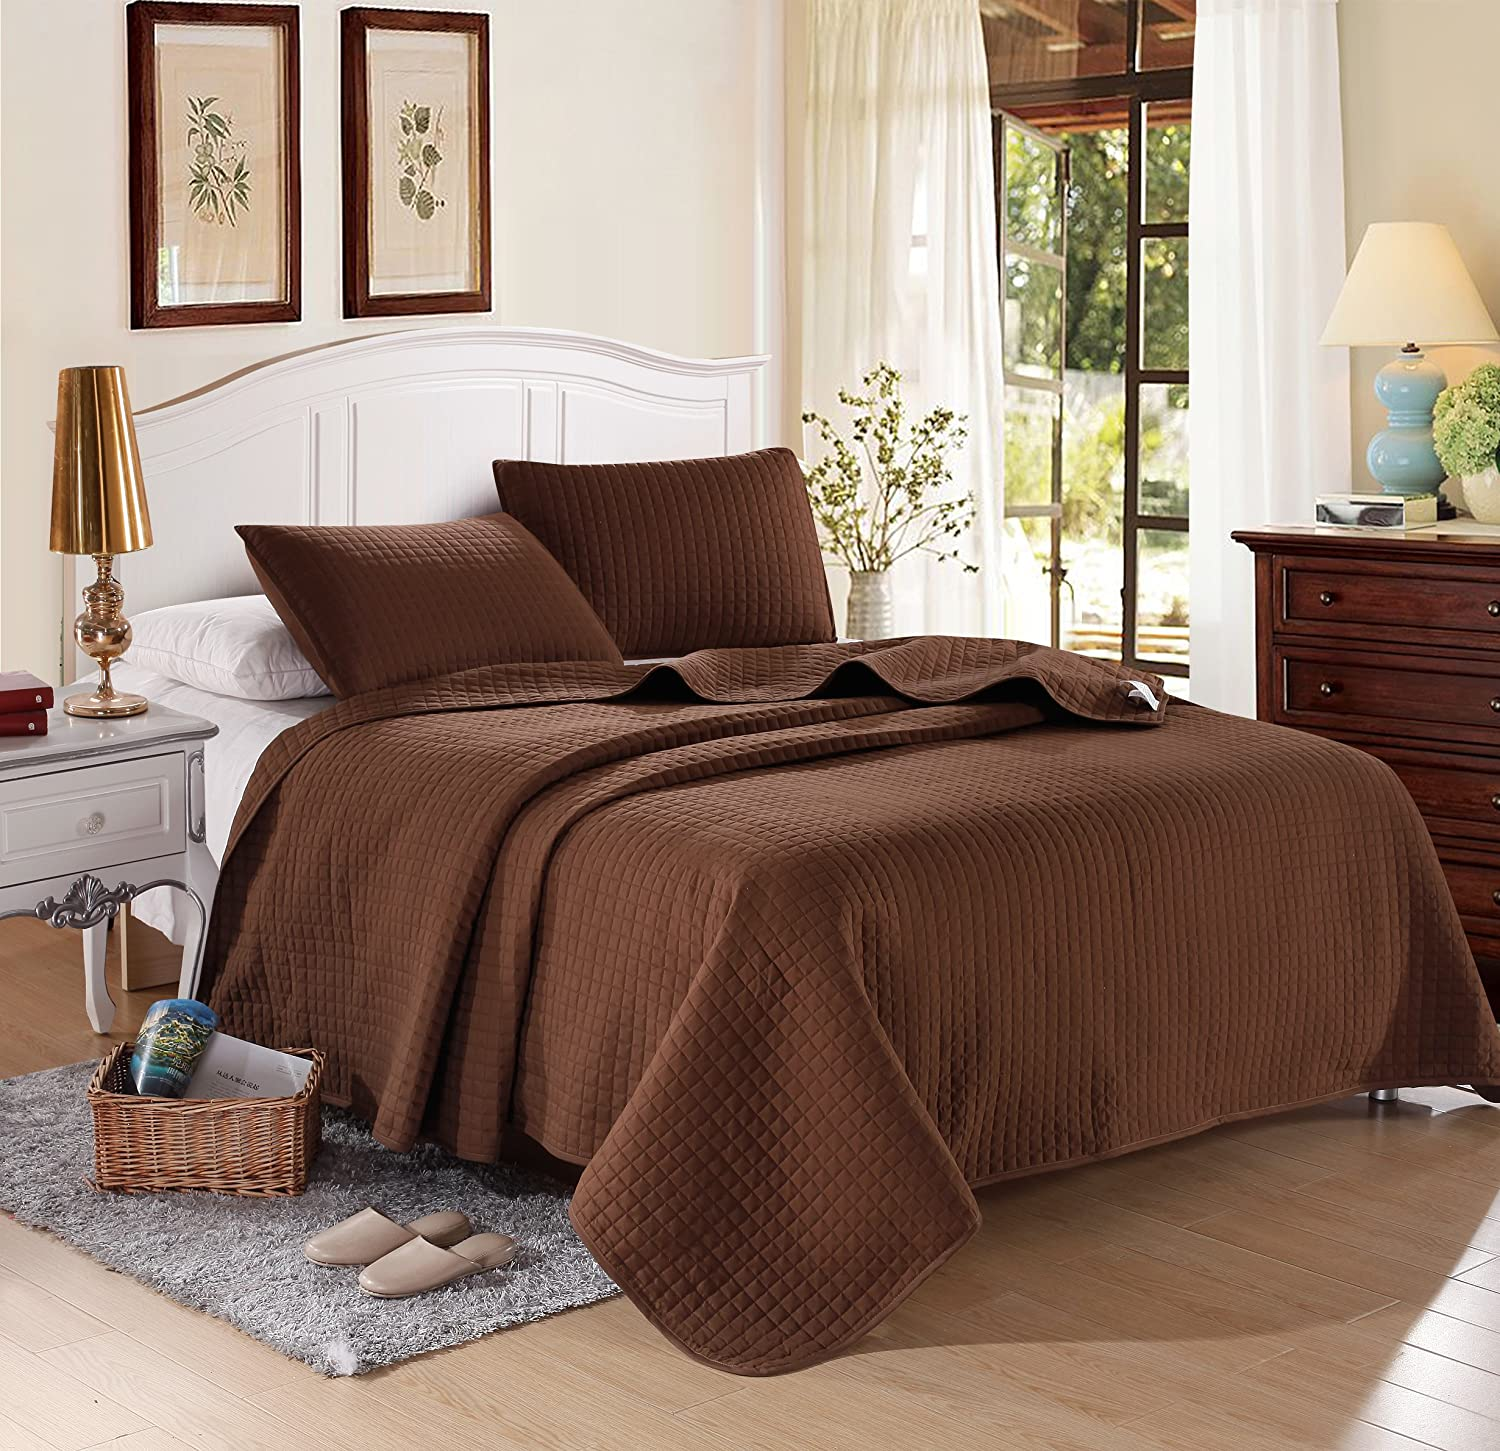 (Full (86x86), Brown) FULL BROWN Solid colour Quilted Bedspread Coverlet(86